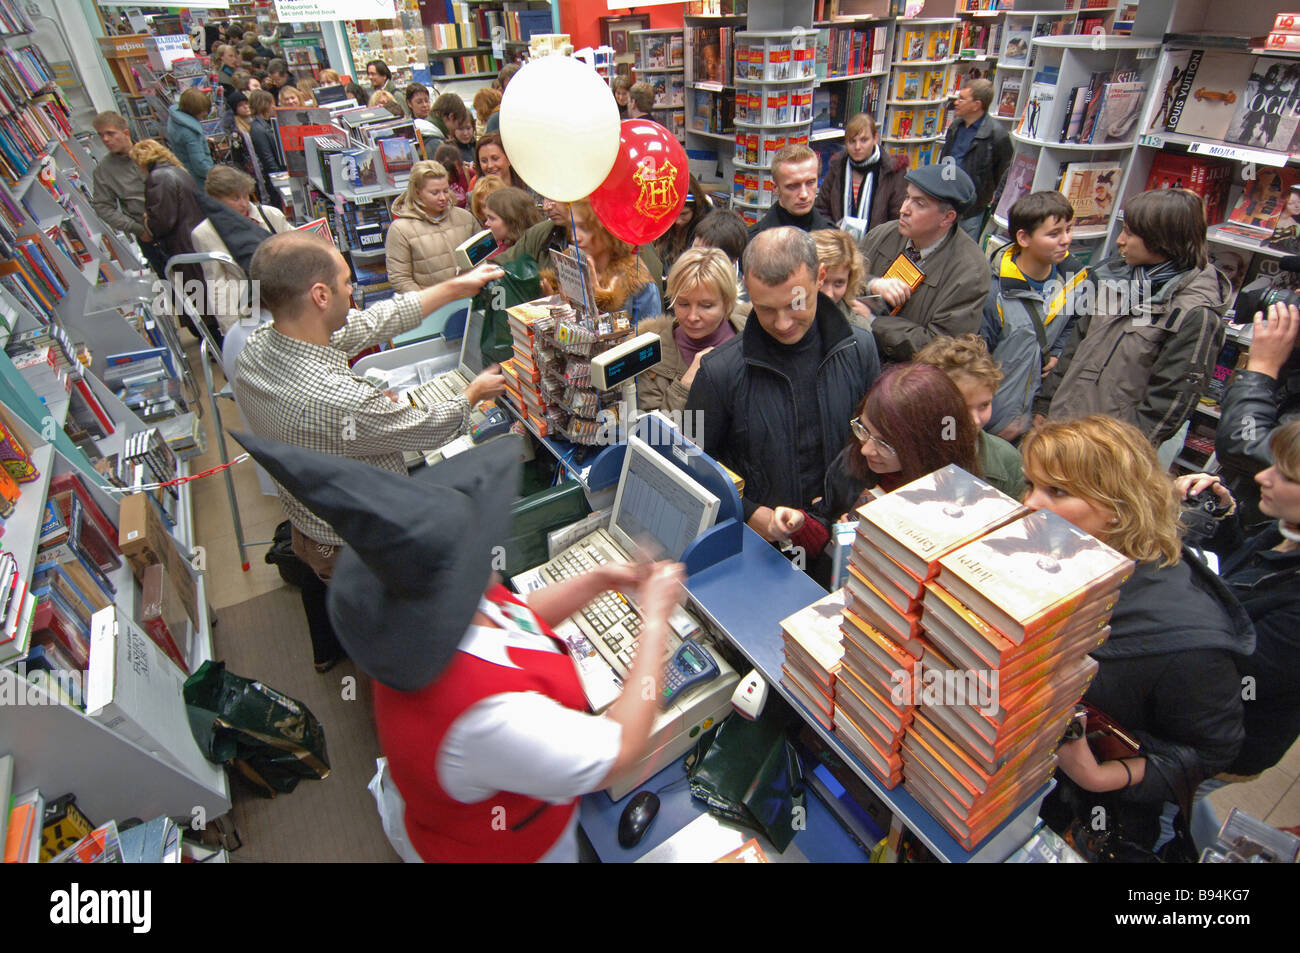 The seventh book about Harry Potter in a Russian translation Harry Potter and the Gift of Death went on sale at - Stock Image